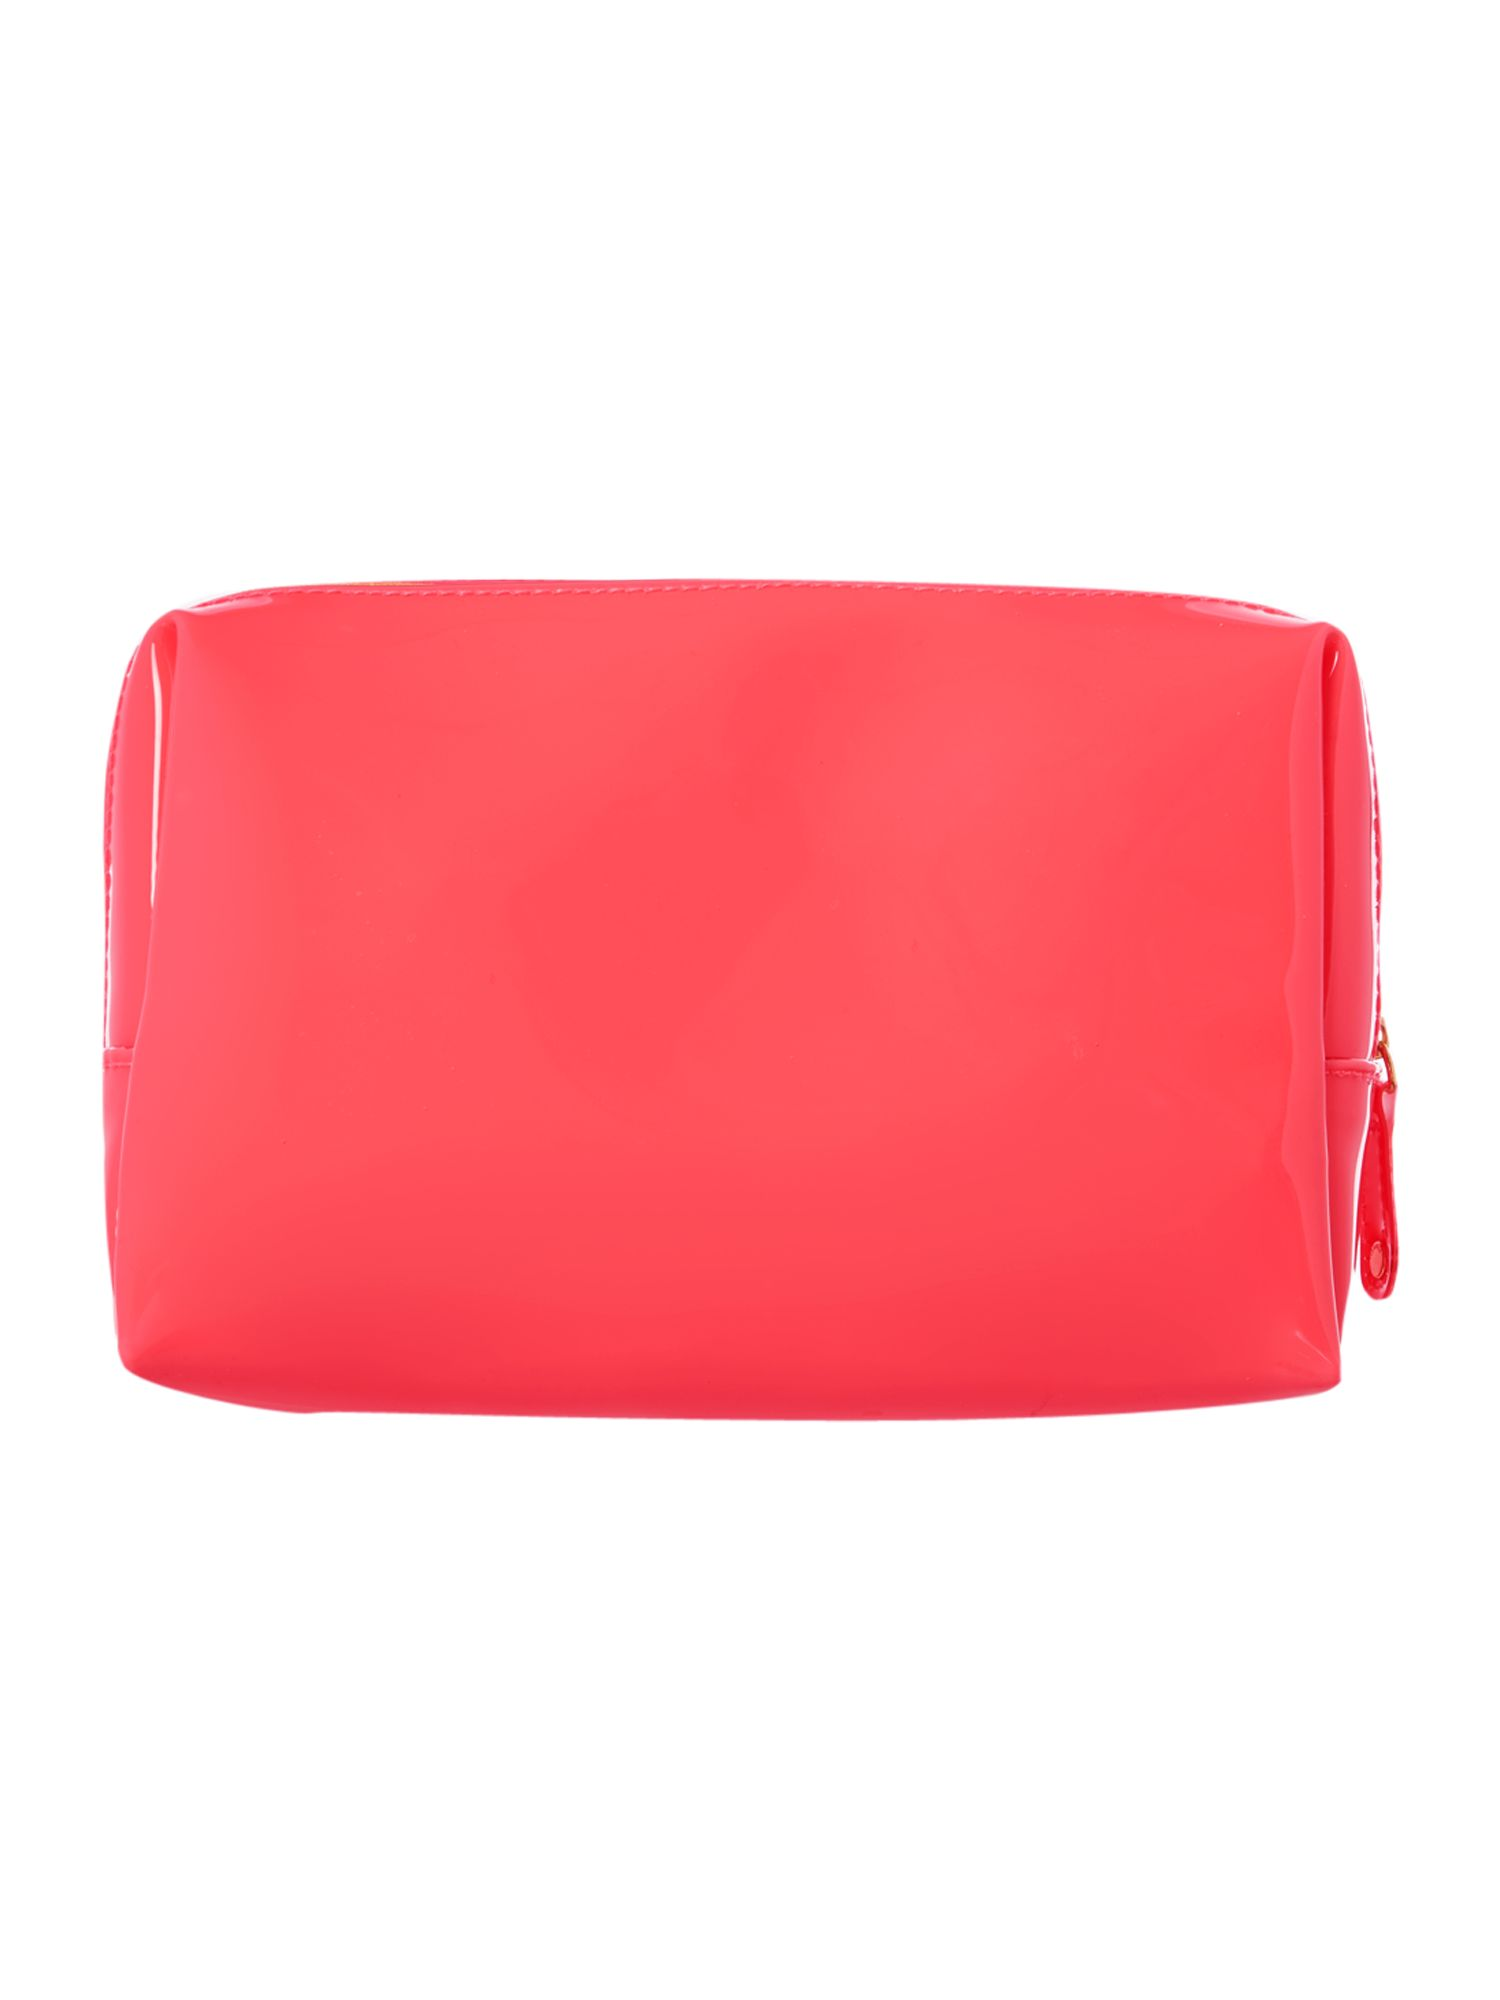 Large pink cosmetics bag